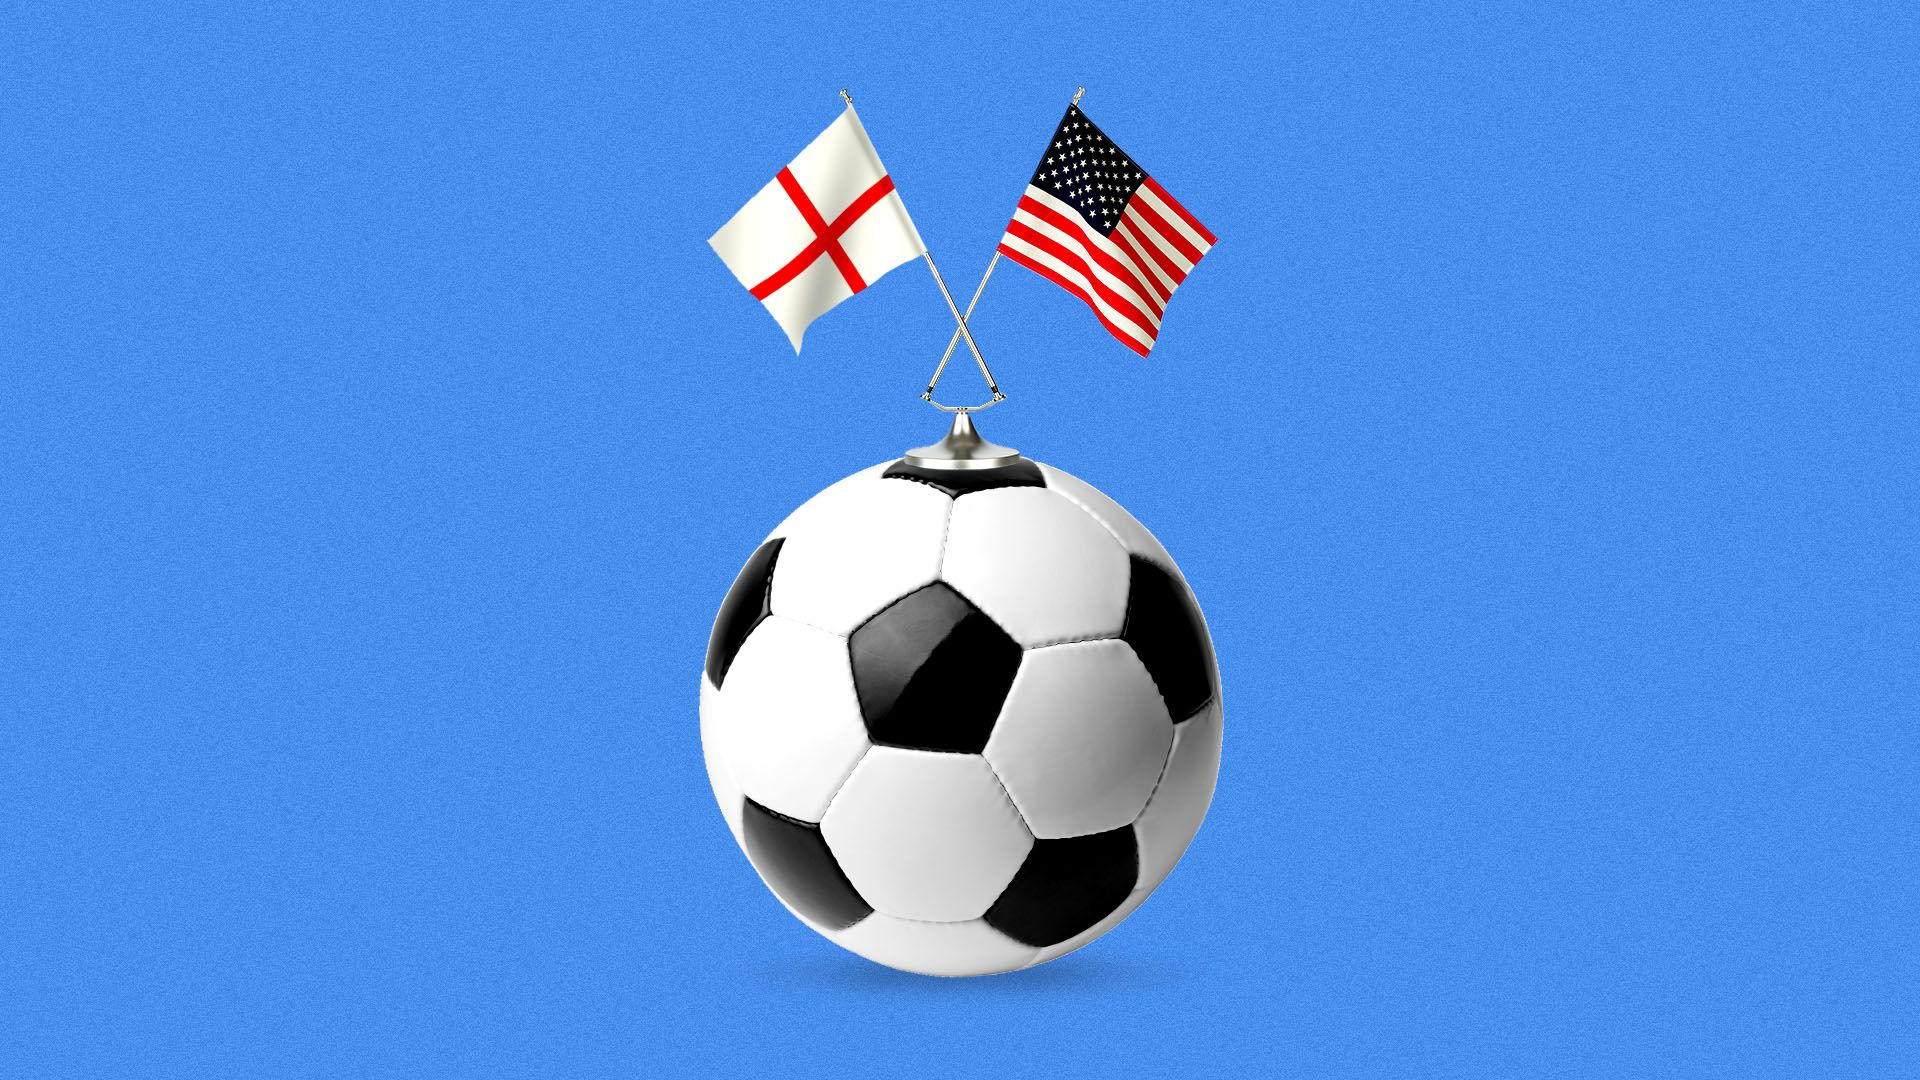 Illustration of a soccer ball with the flags of England and the United States on top